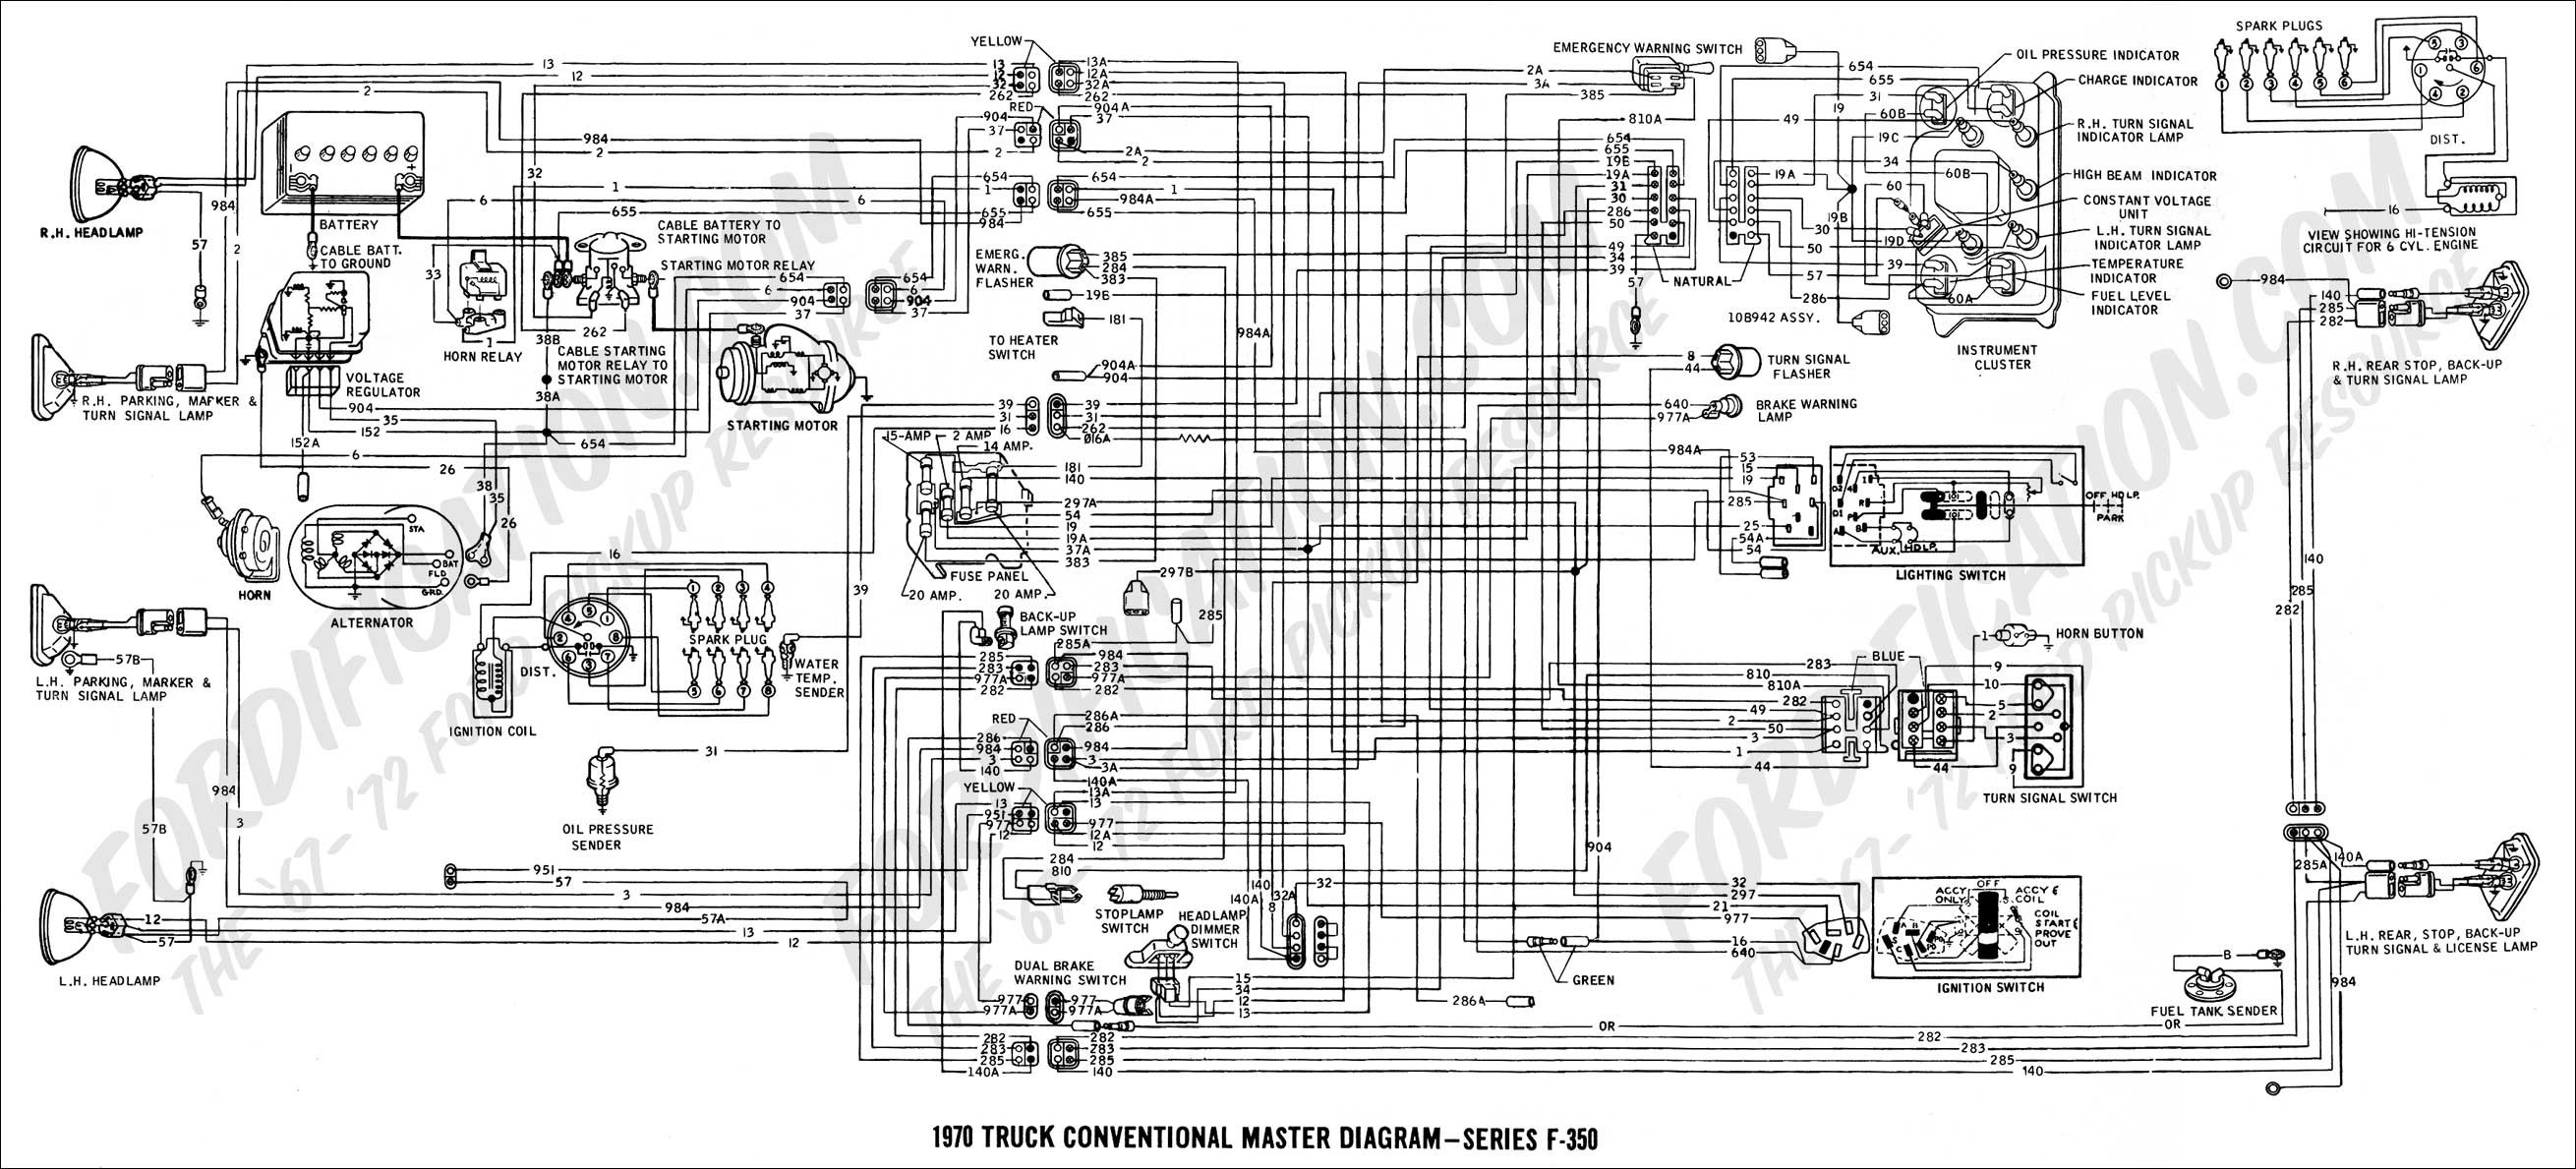 1999 ford F250 Tail Light Wiring Diagram | Wiring Diagram ...